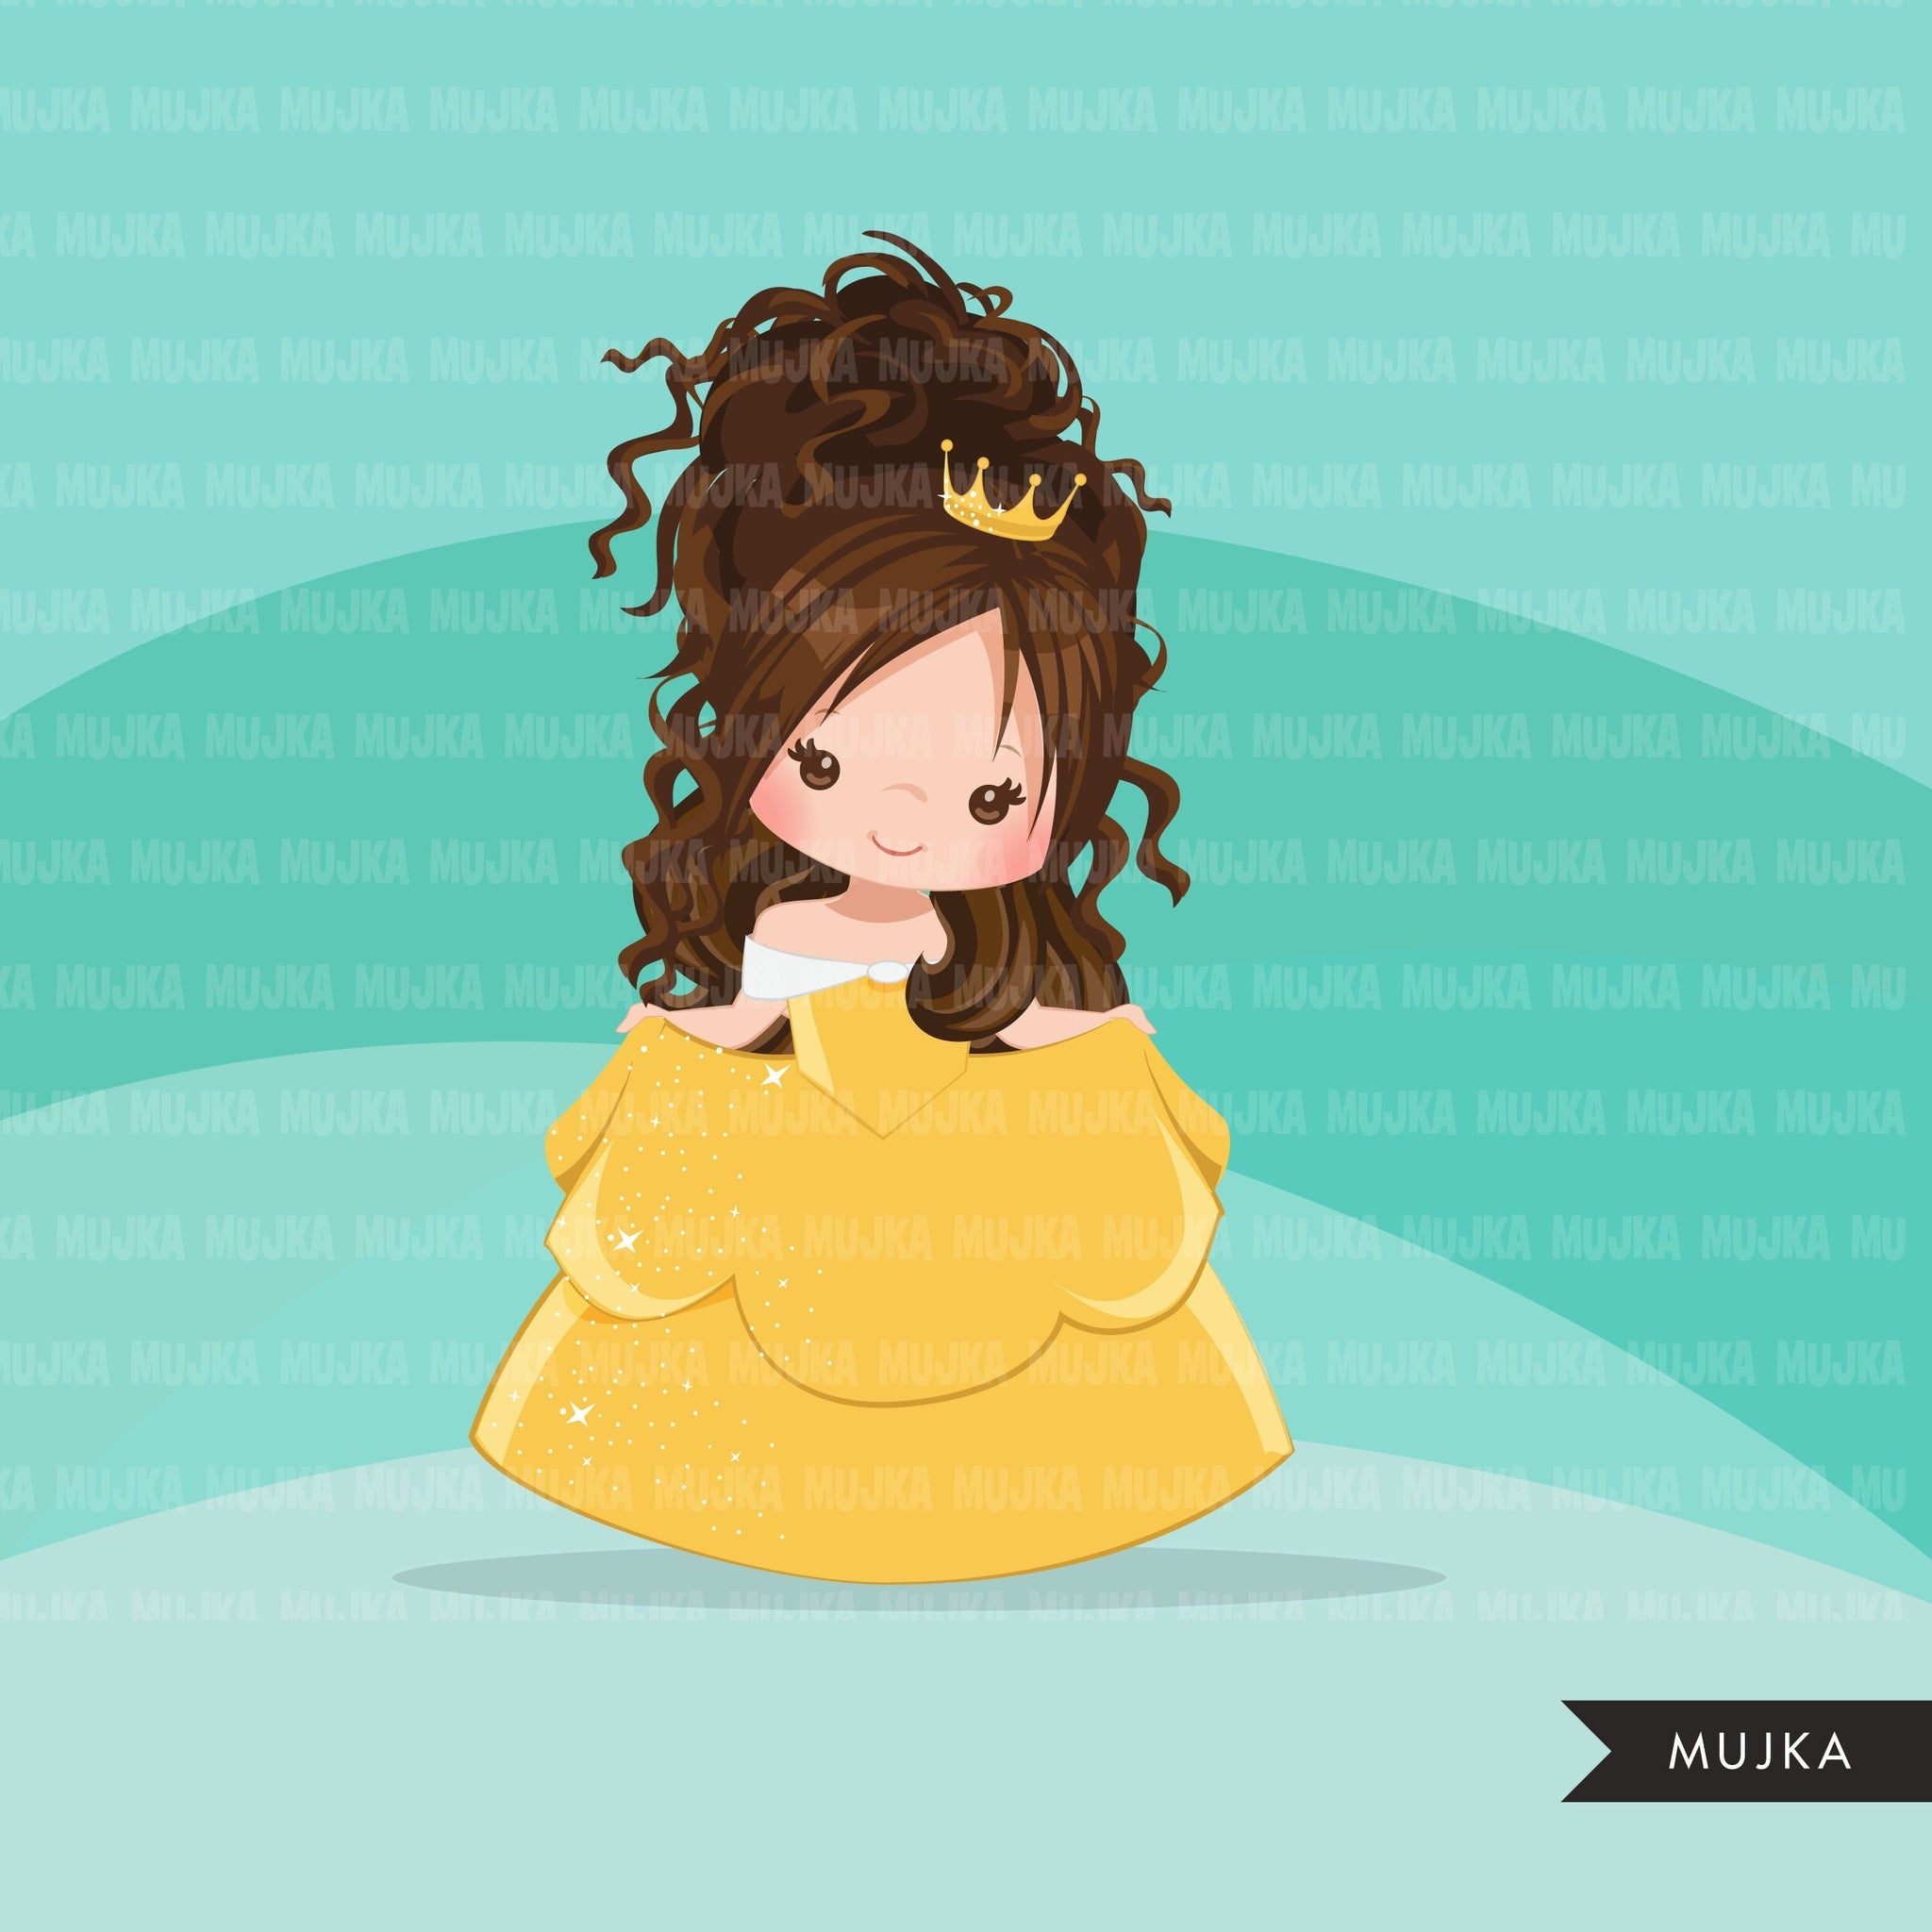 Princess clipart, fairy tale graphics, girls story book, yellow princess dress, commercial use clip art